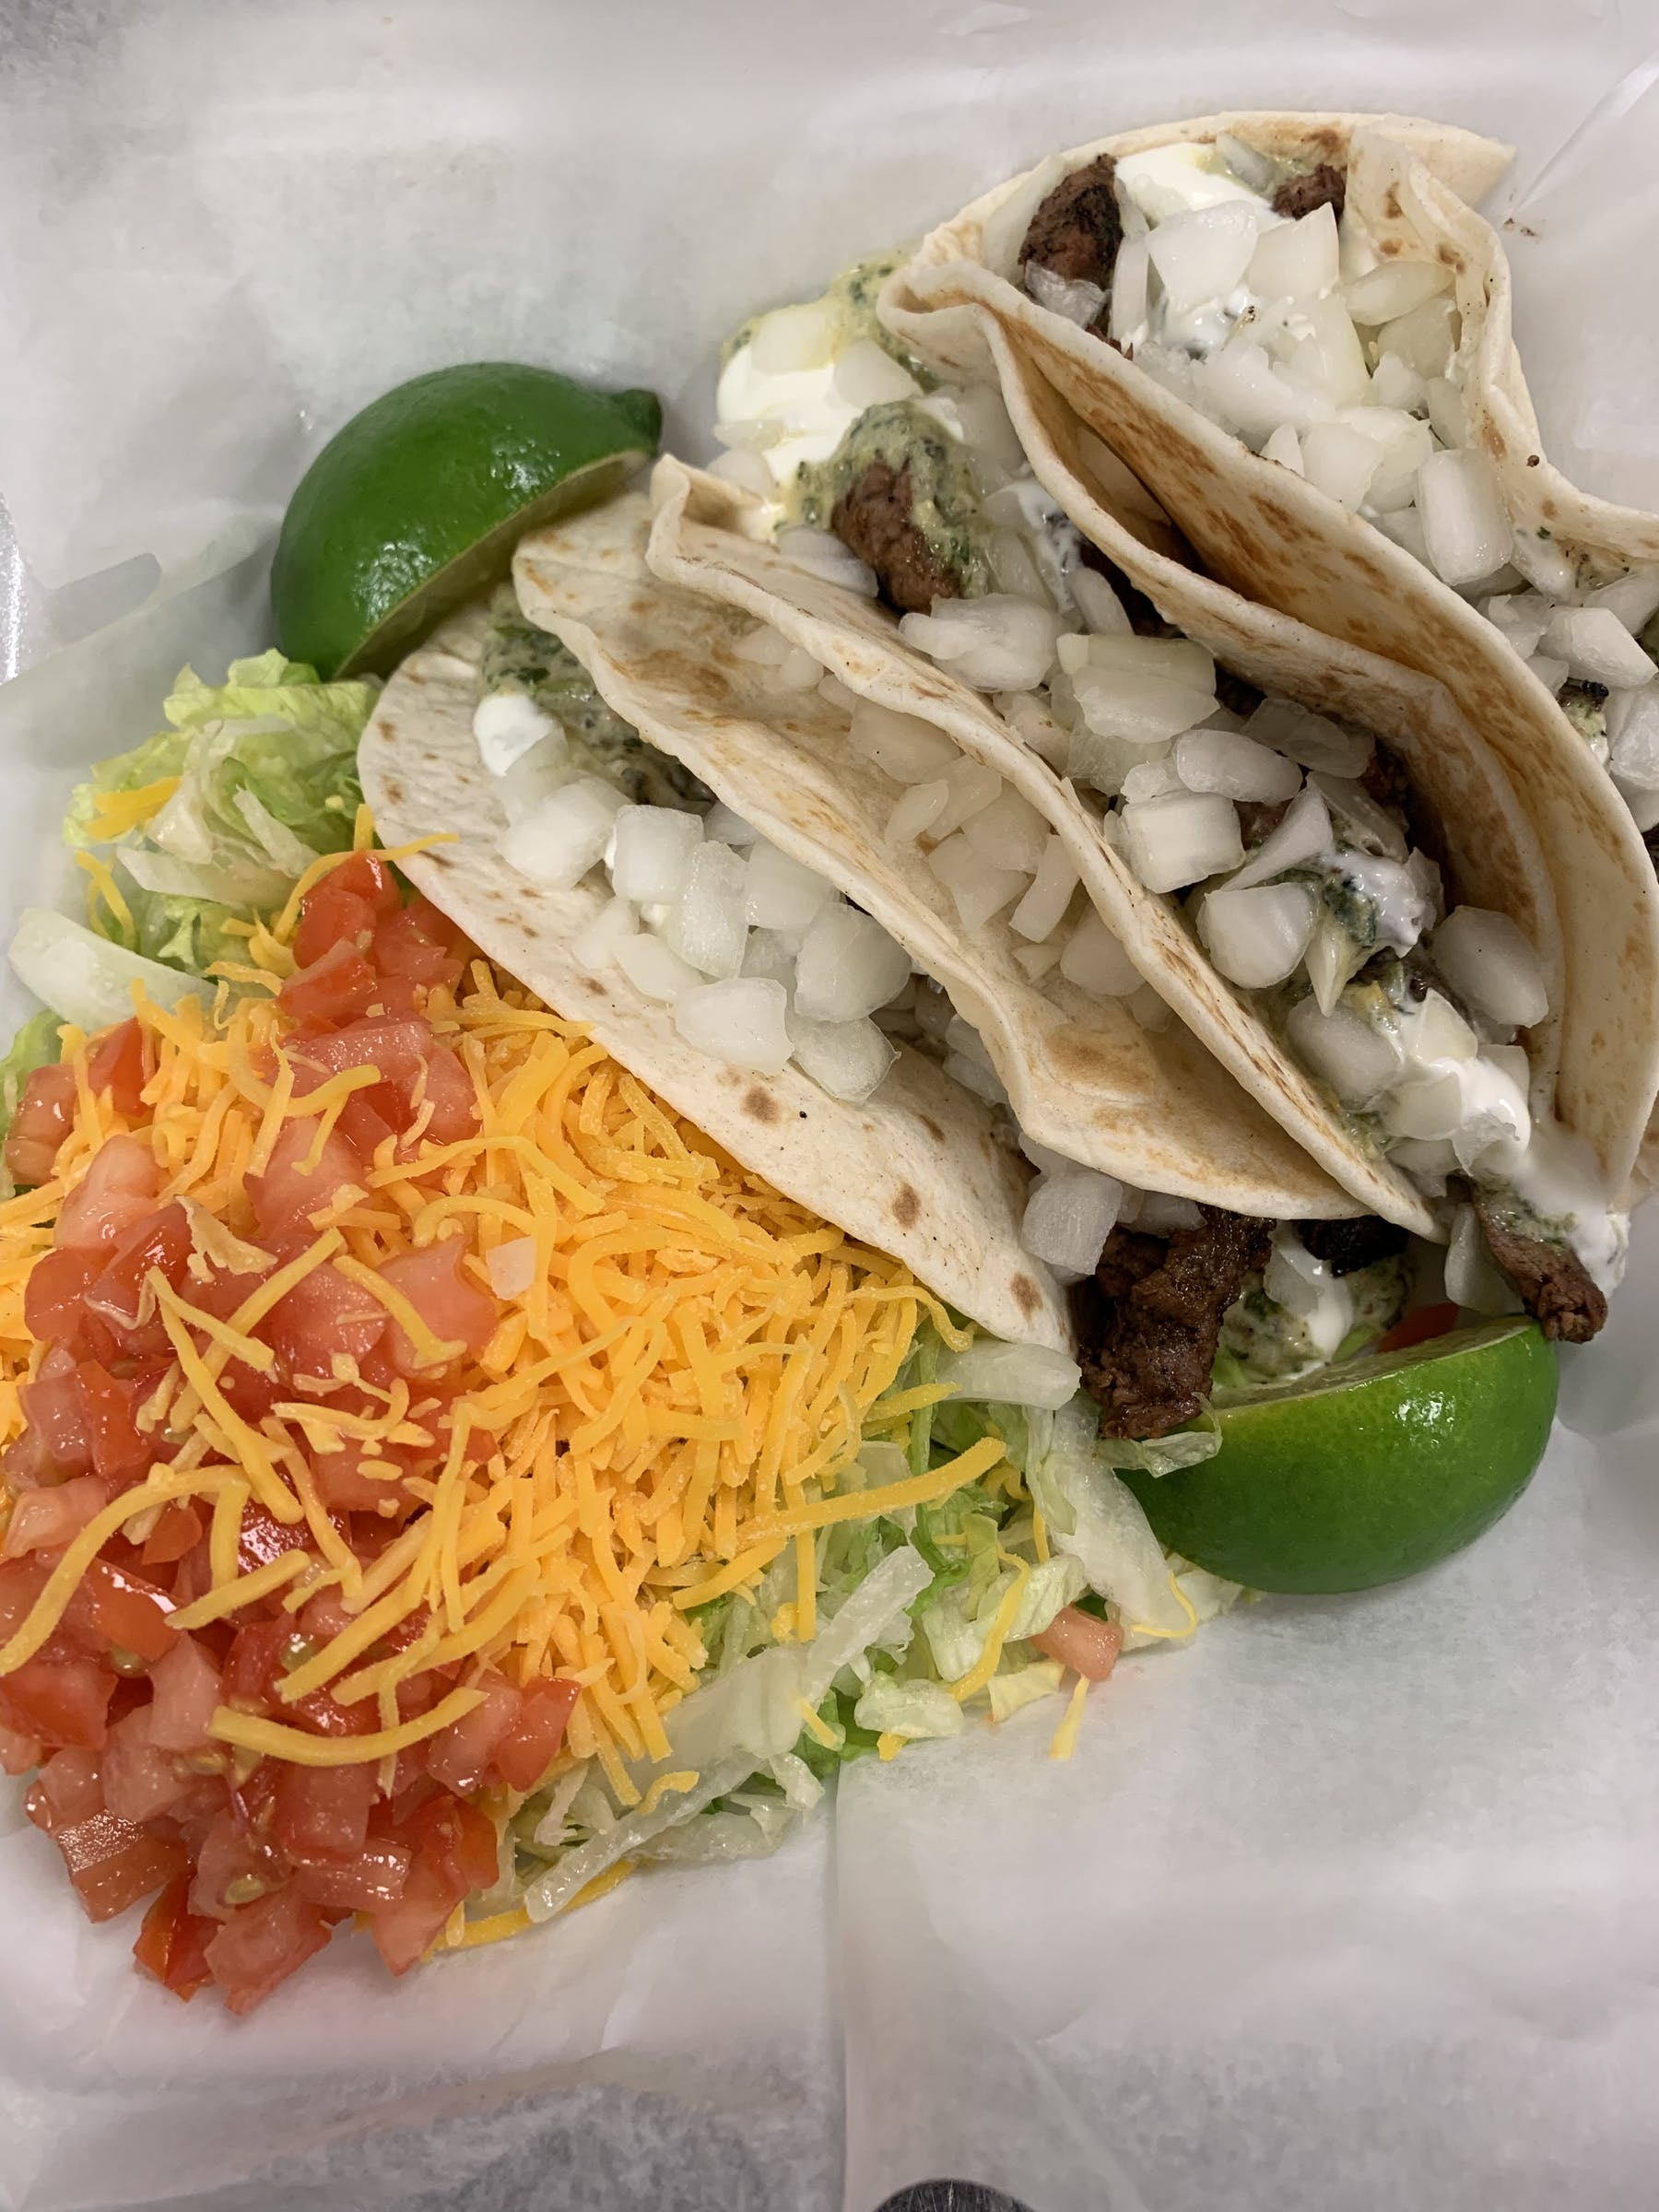 a close up of a plate of tacos